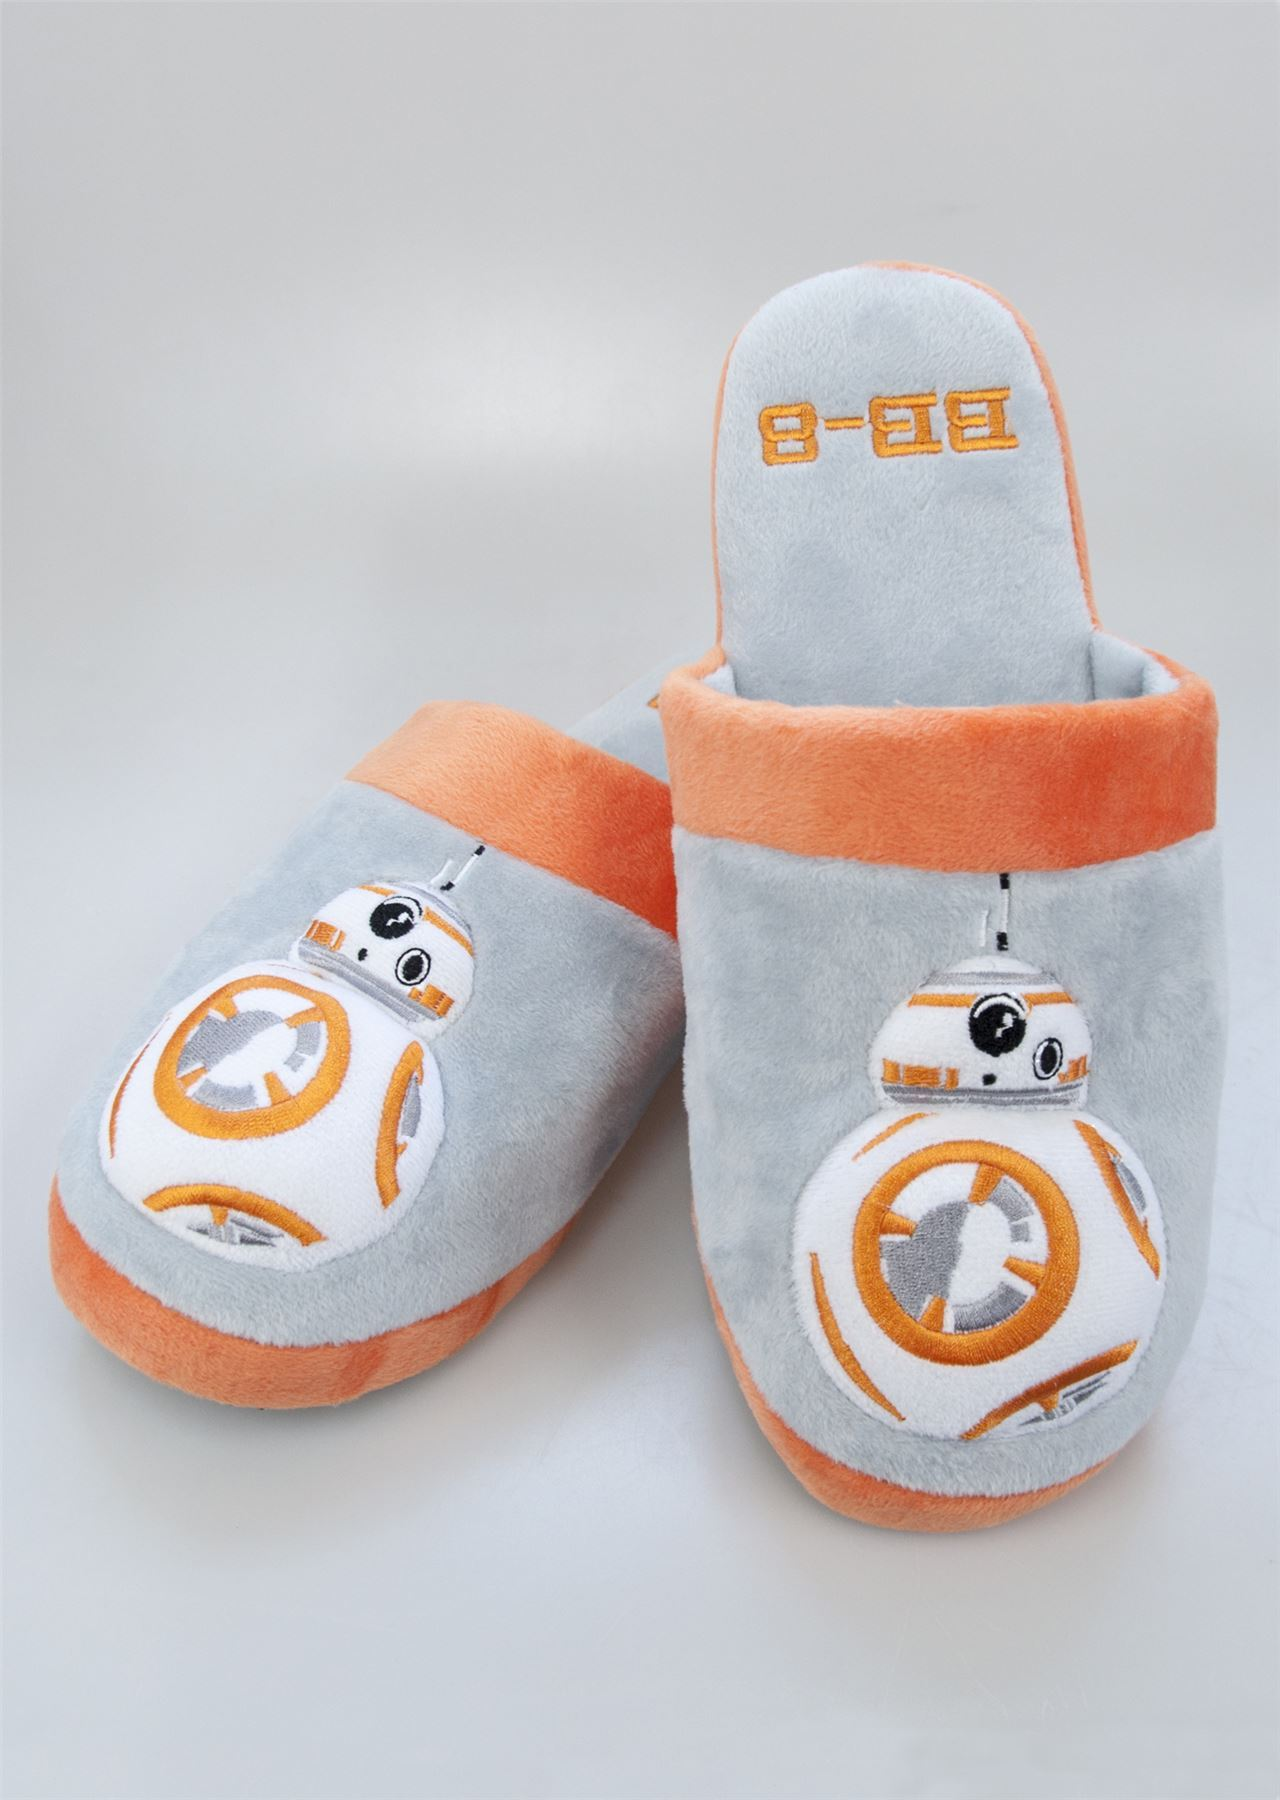 a5b1c54b6c43 Official Star Wars Slippers Last Jedi Adult Slip On Mule Slippers Size 5-10.  Click on the Image to Enlarge